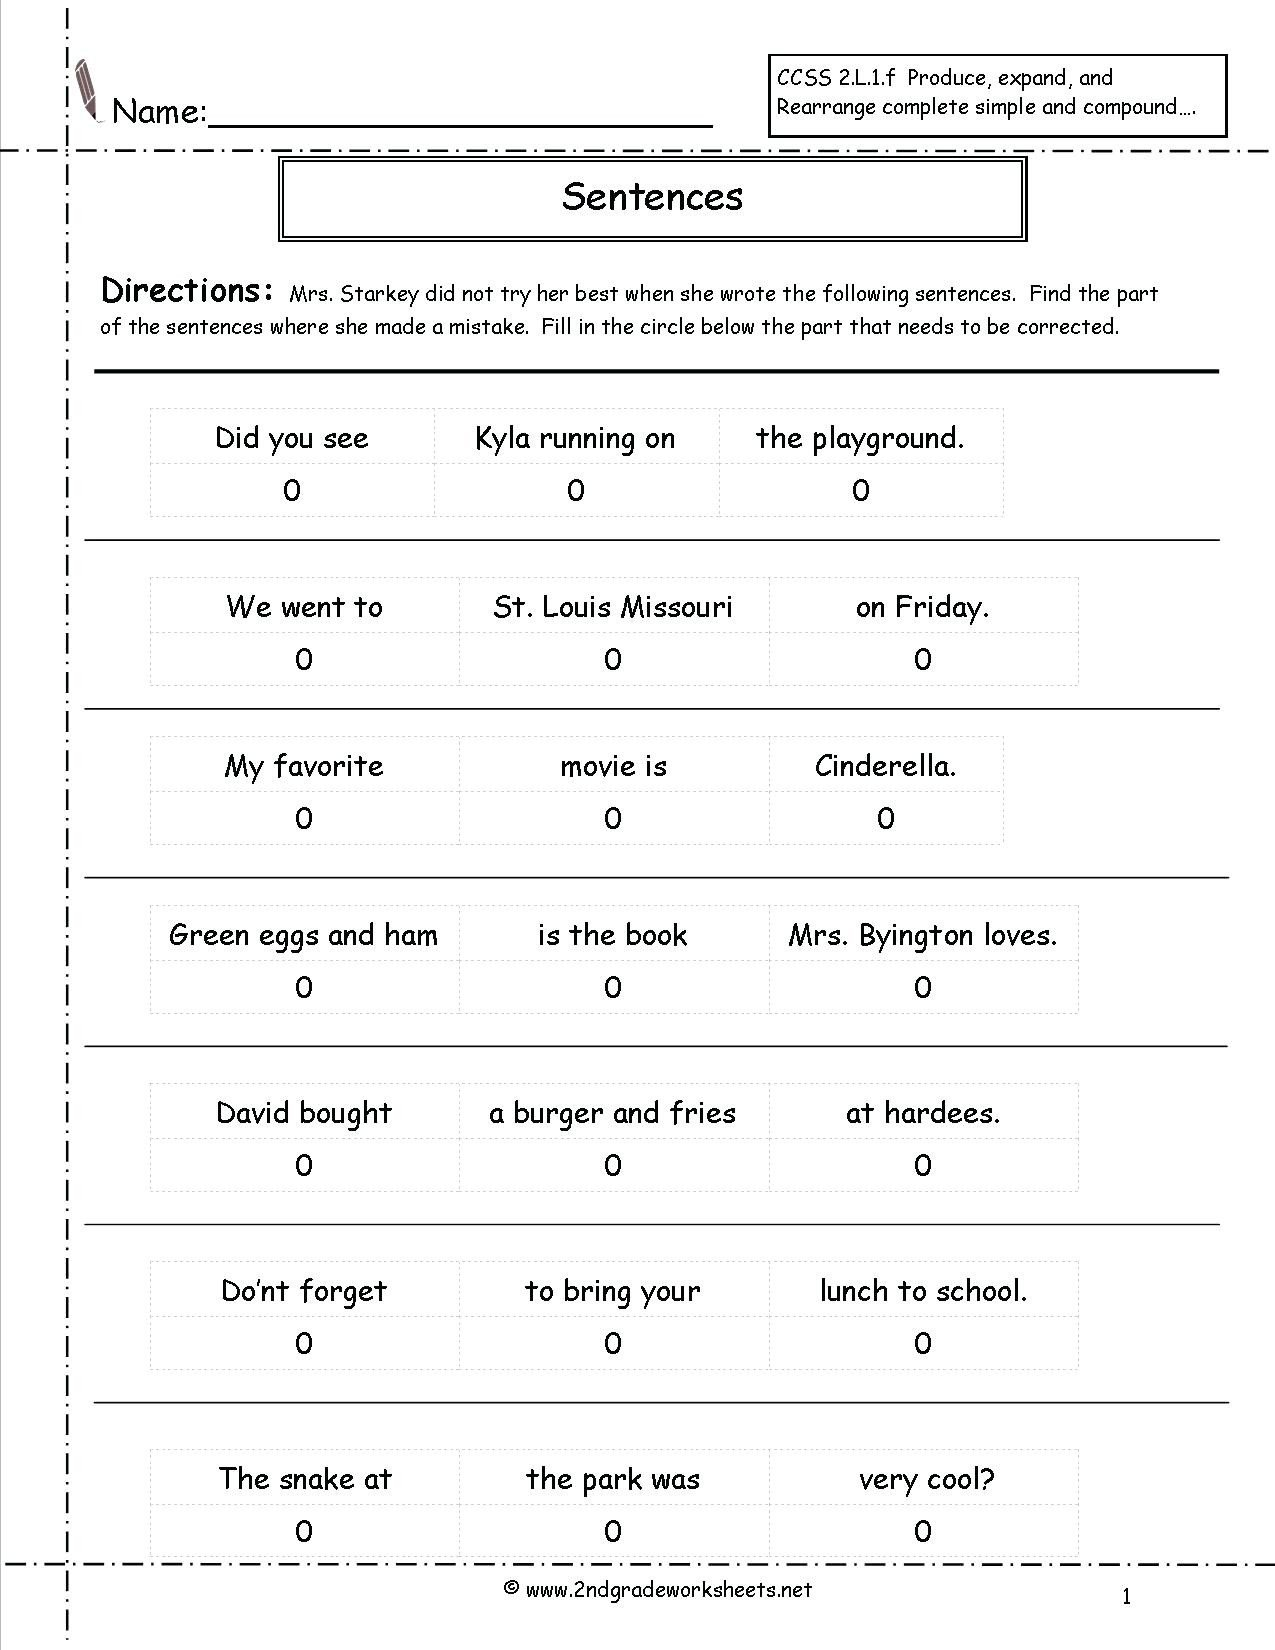 Four Kinds Of Sentences Worksheets Types Sentences Worksheets to Download Types Of